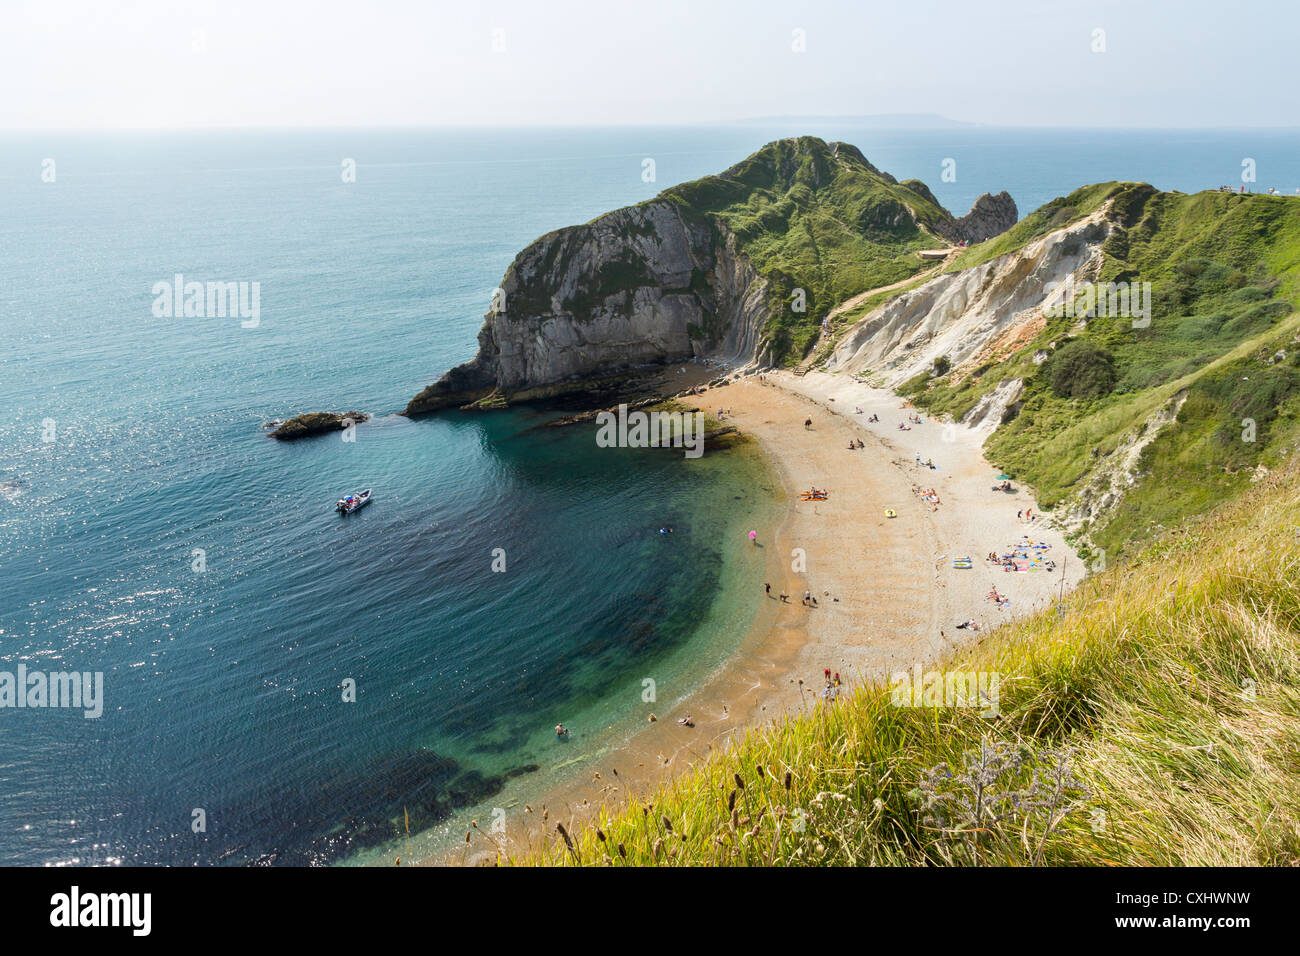 Man o War Bay near Durdle Door Dorset England UK Stock Photo